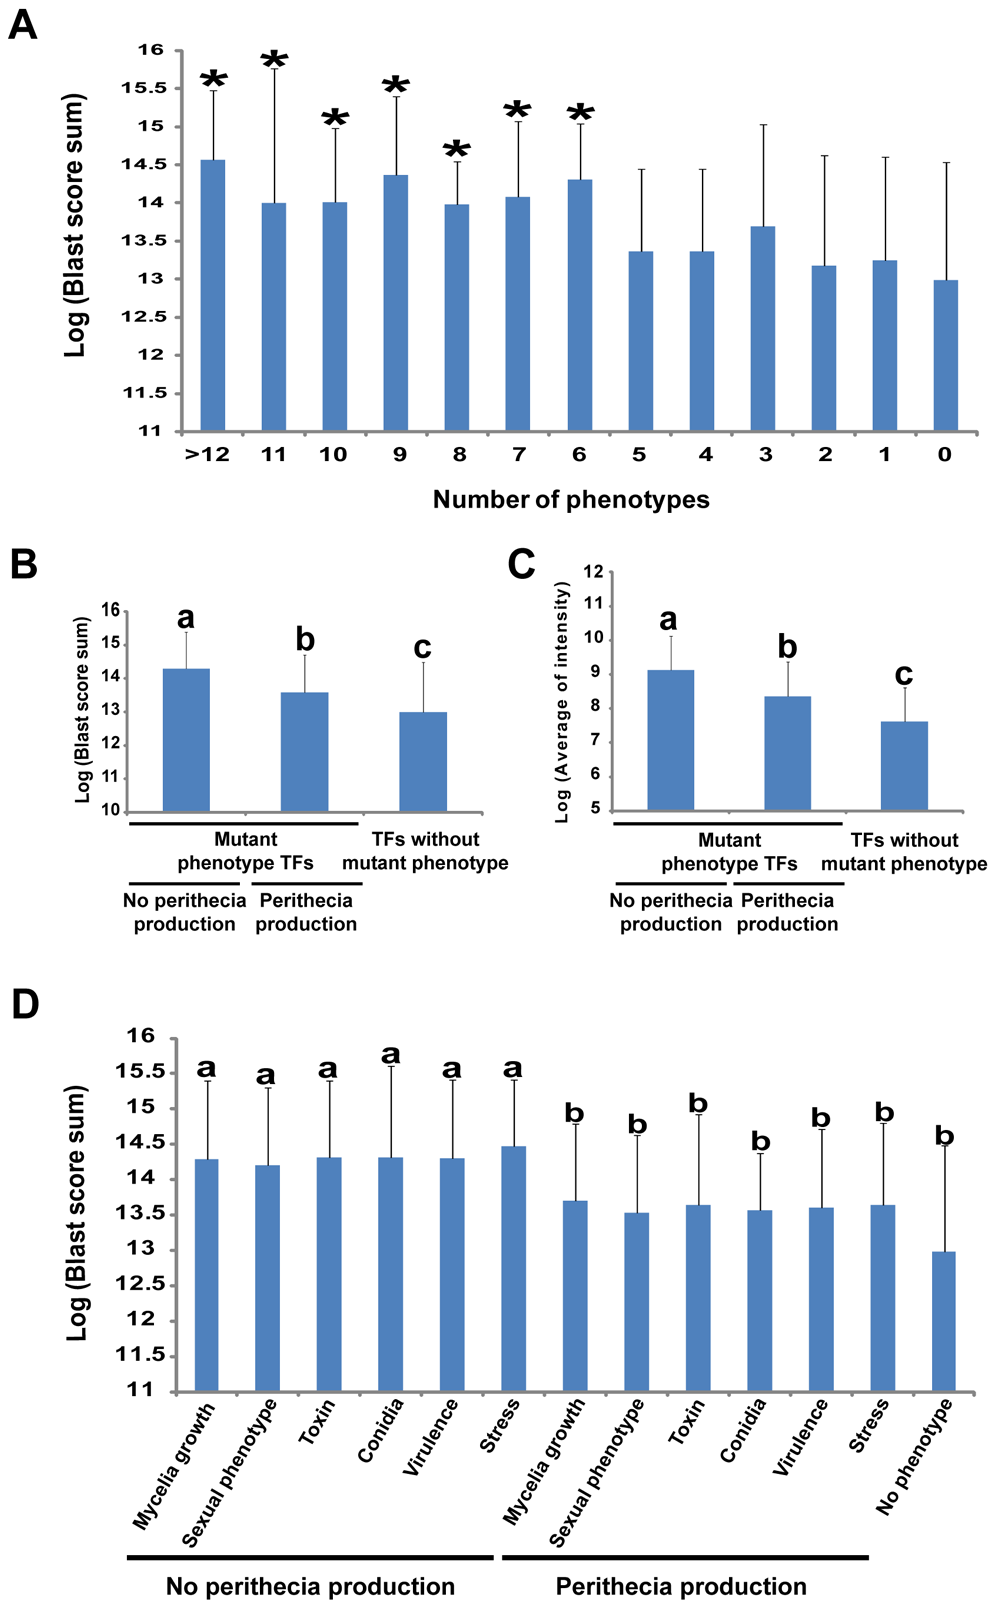 Relationship between multiple phenotypes, gene conservation in fungal kingdom, and transcription factor (TF) expression levels.